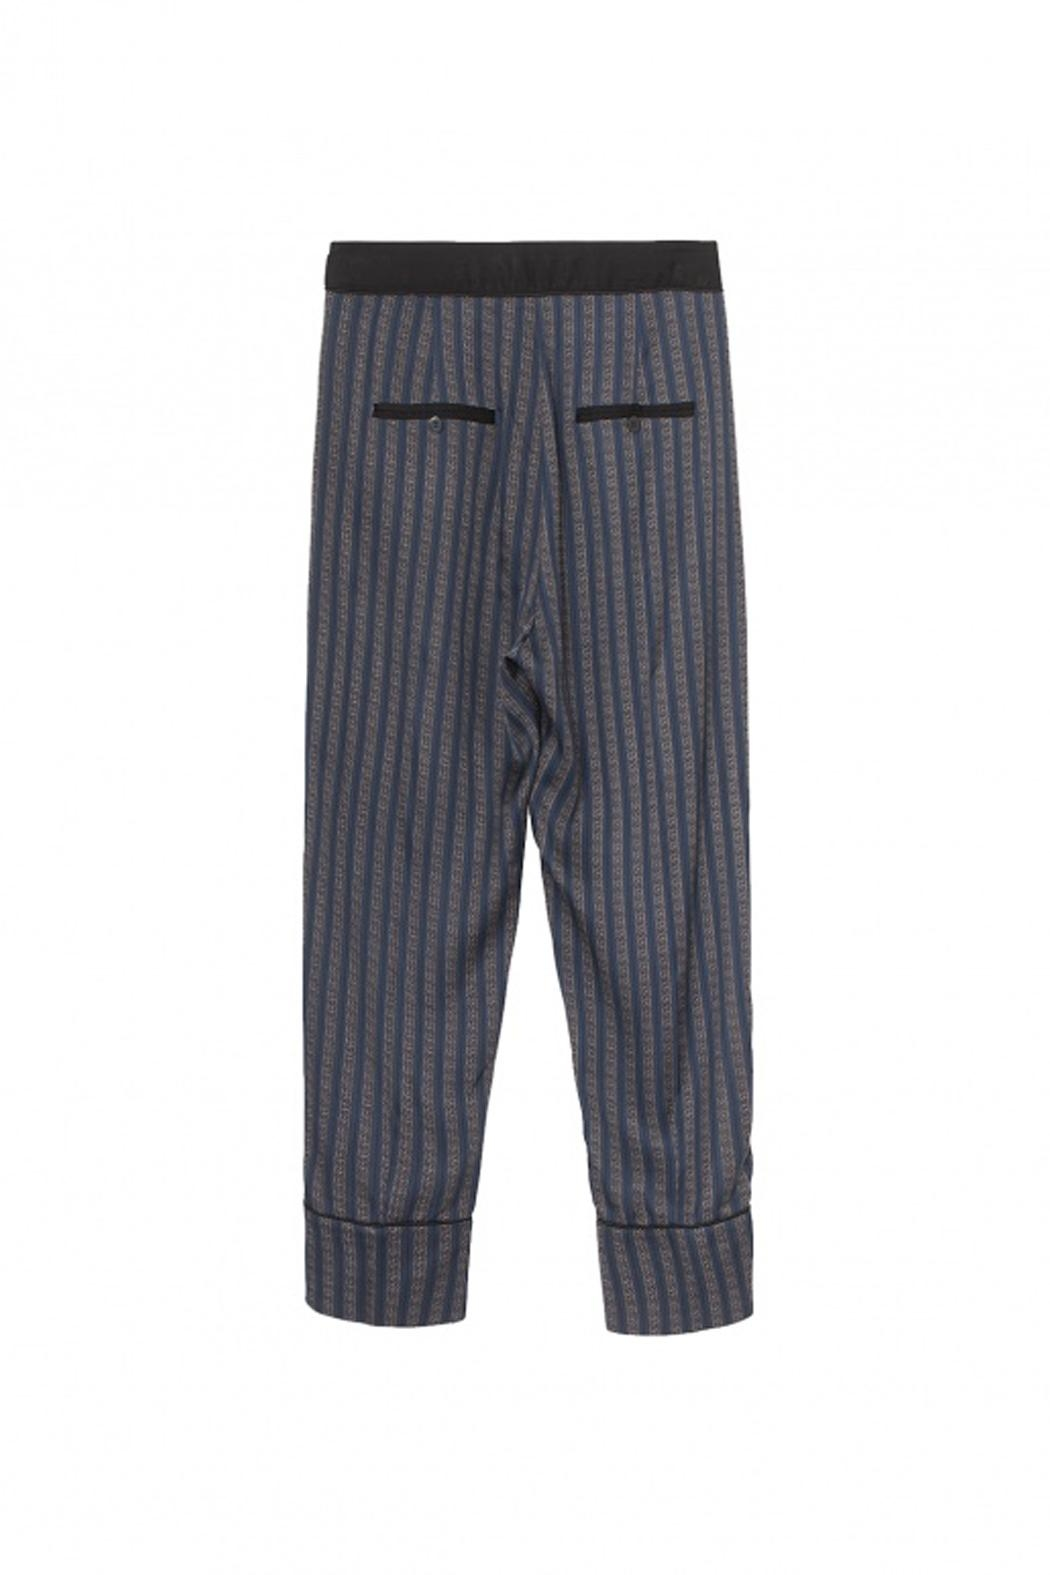 Munthe Hilary Stripe Pants - Side Cropped Image